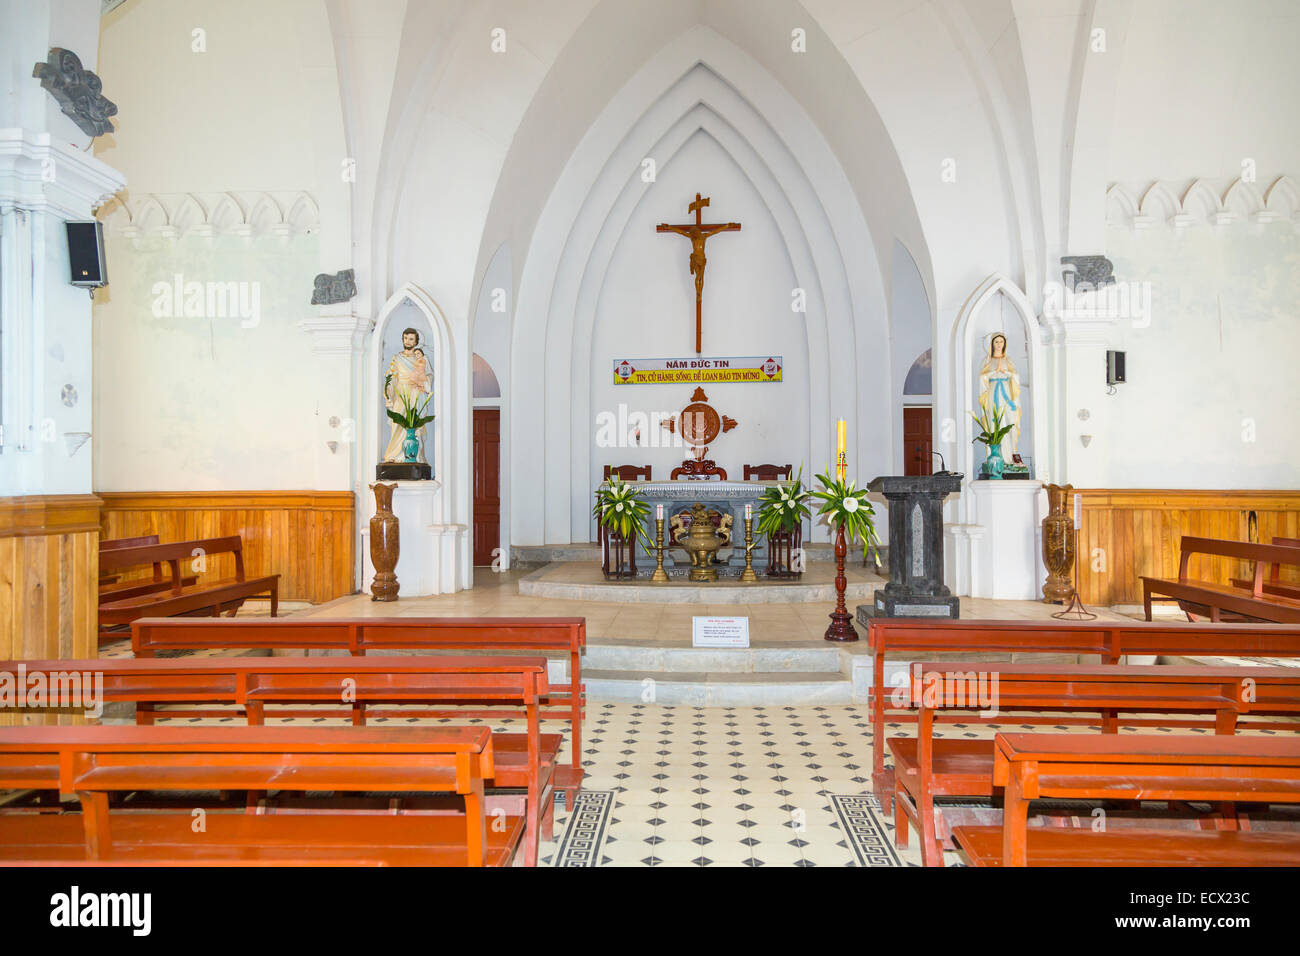 The interior of the Catholic church in Sapa, Vietnam, Asia. - Stock Image